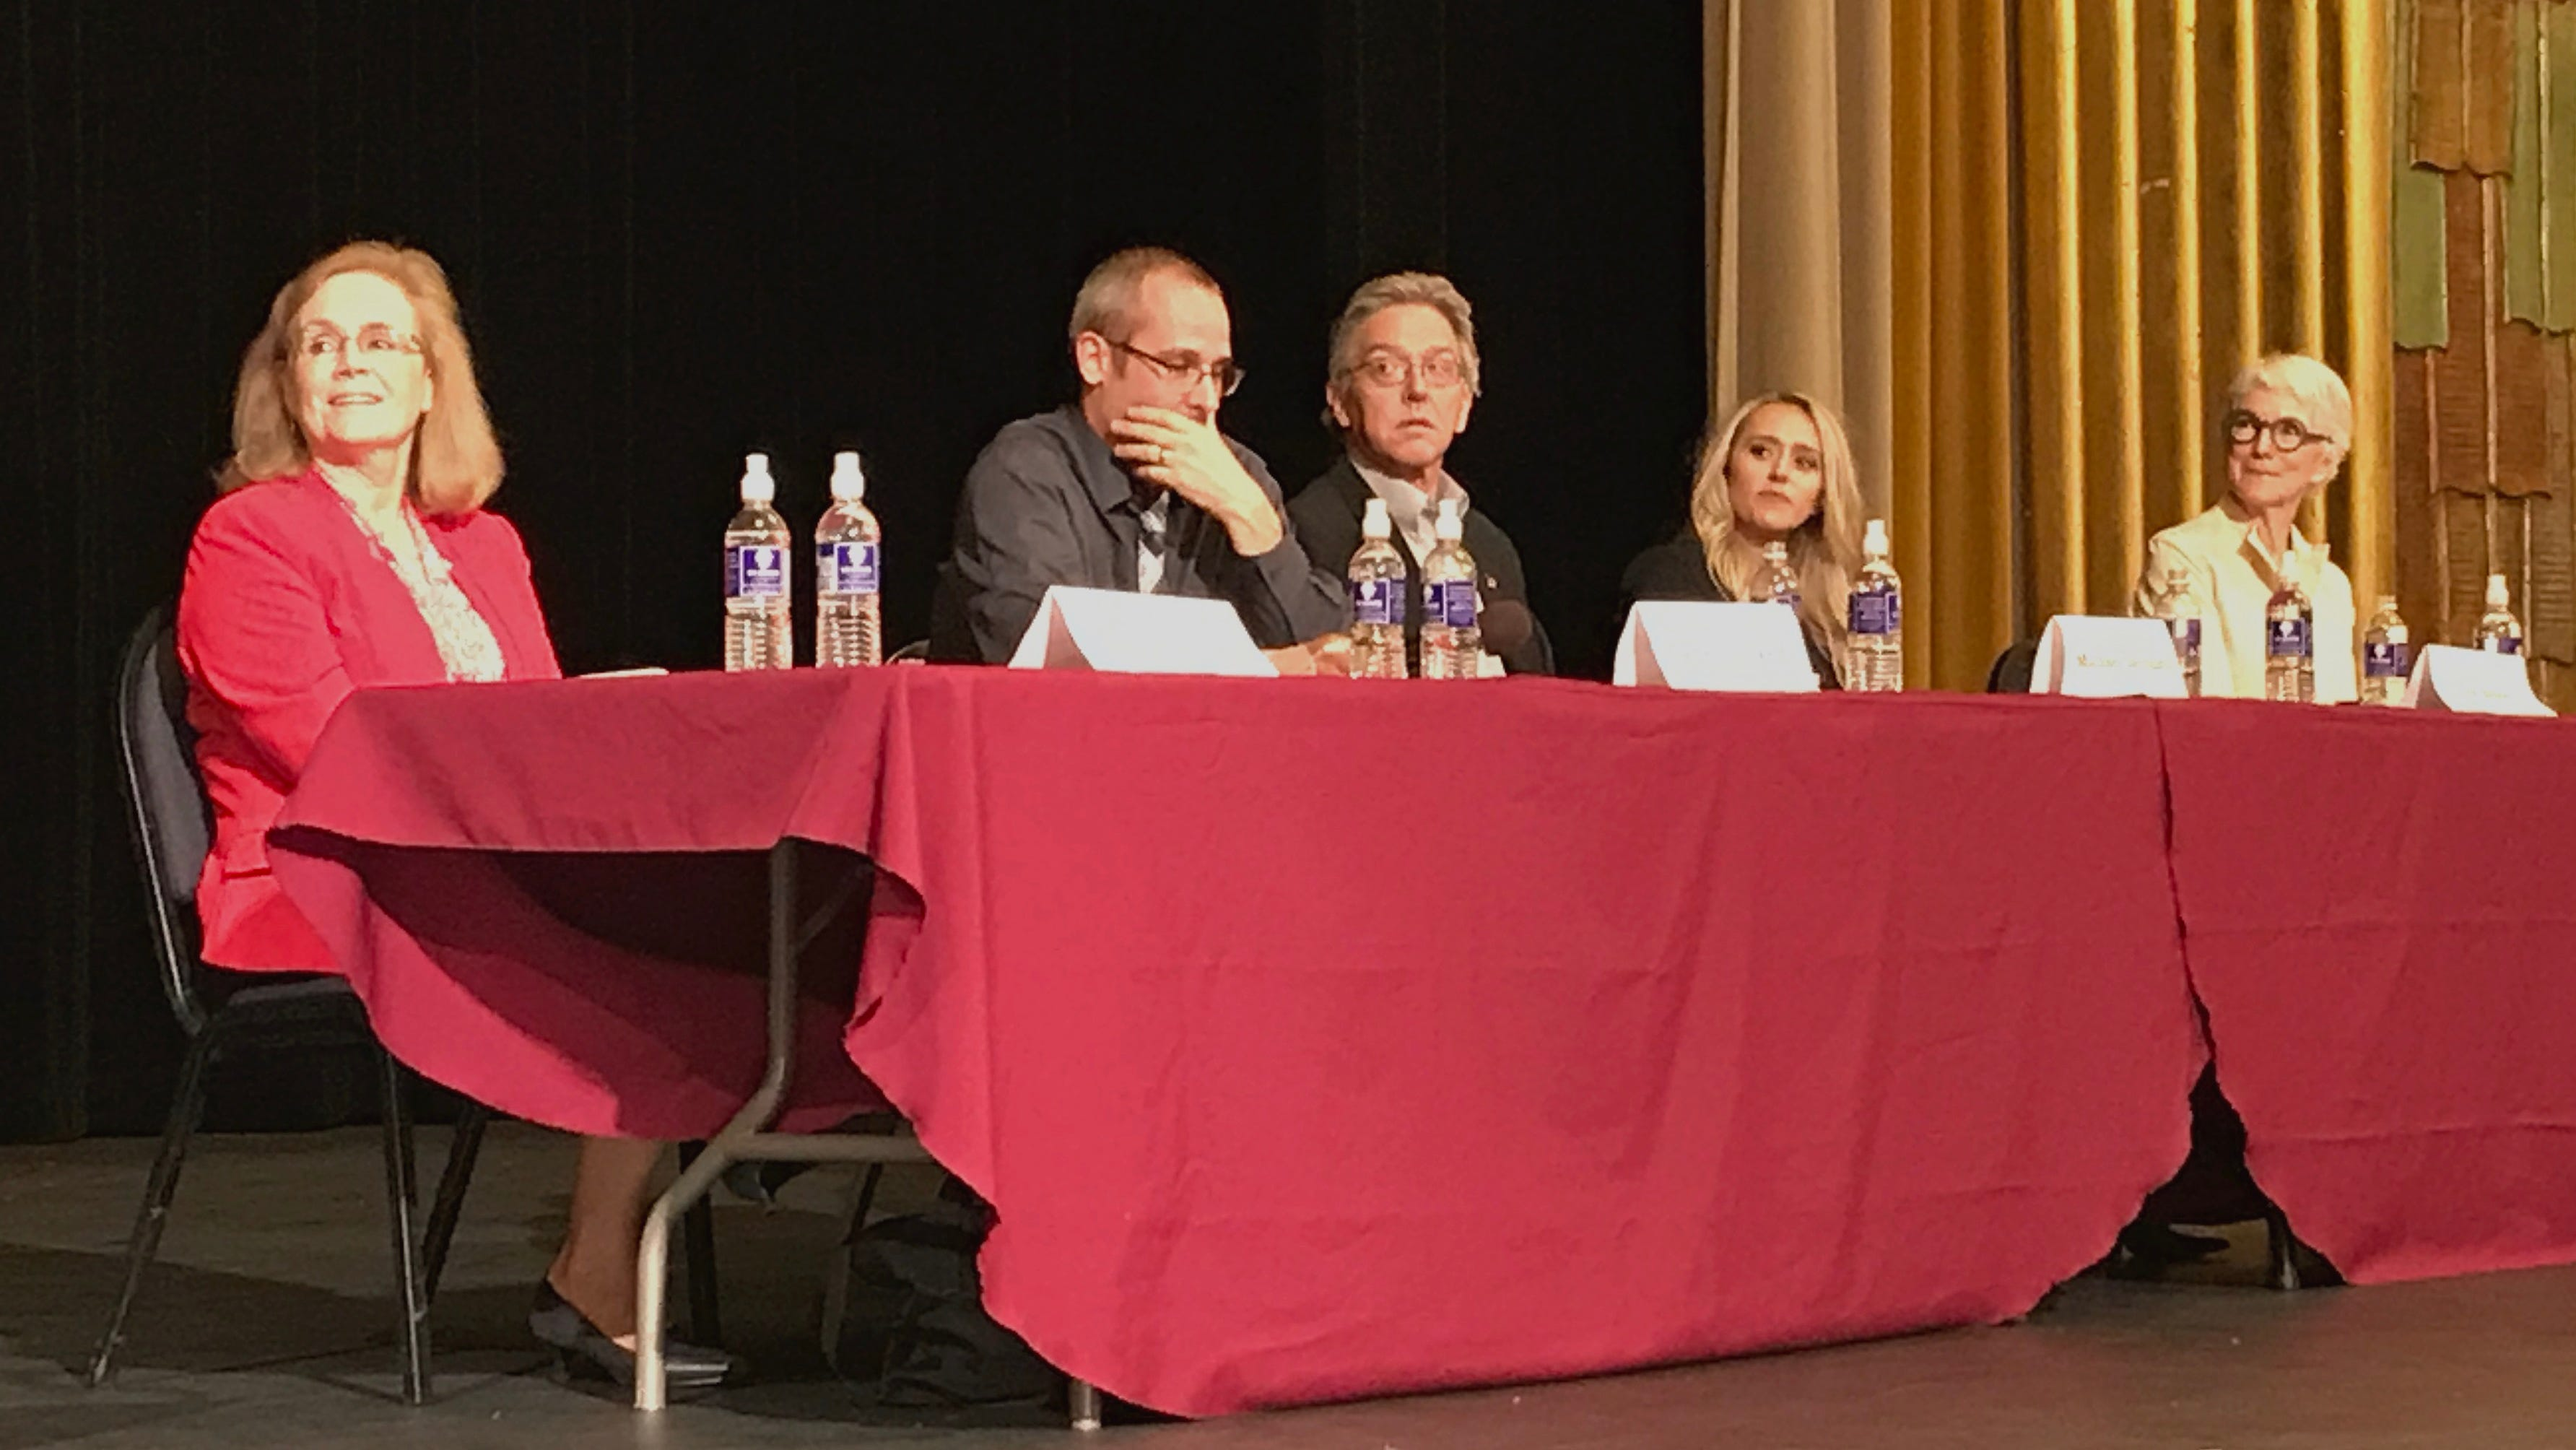 Redding City Council candidates, from left, Kristen Schreder, James Crockett, Michael Dacquisto, Erin Resner and Francie Sullivan appear Wednesday evening at a League of Women Voters forum inside the Cascade Theatre.